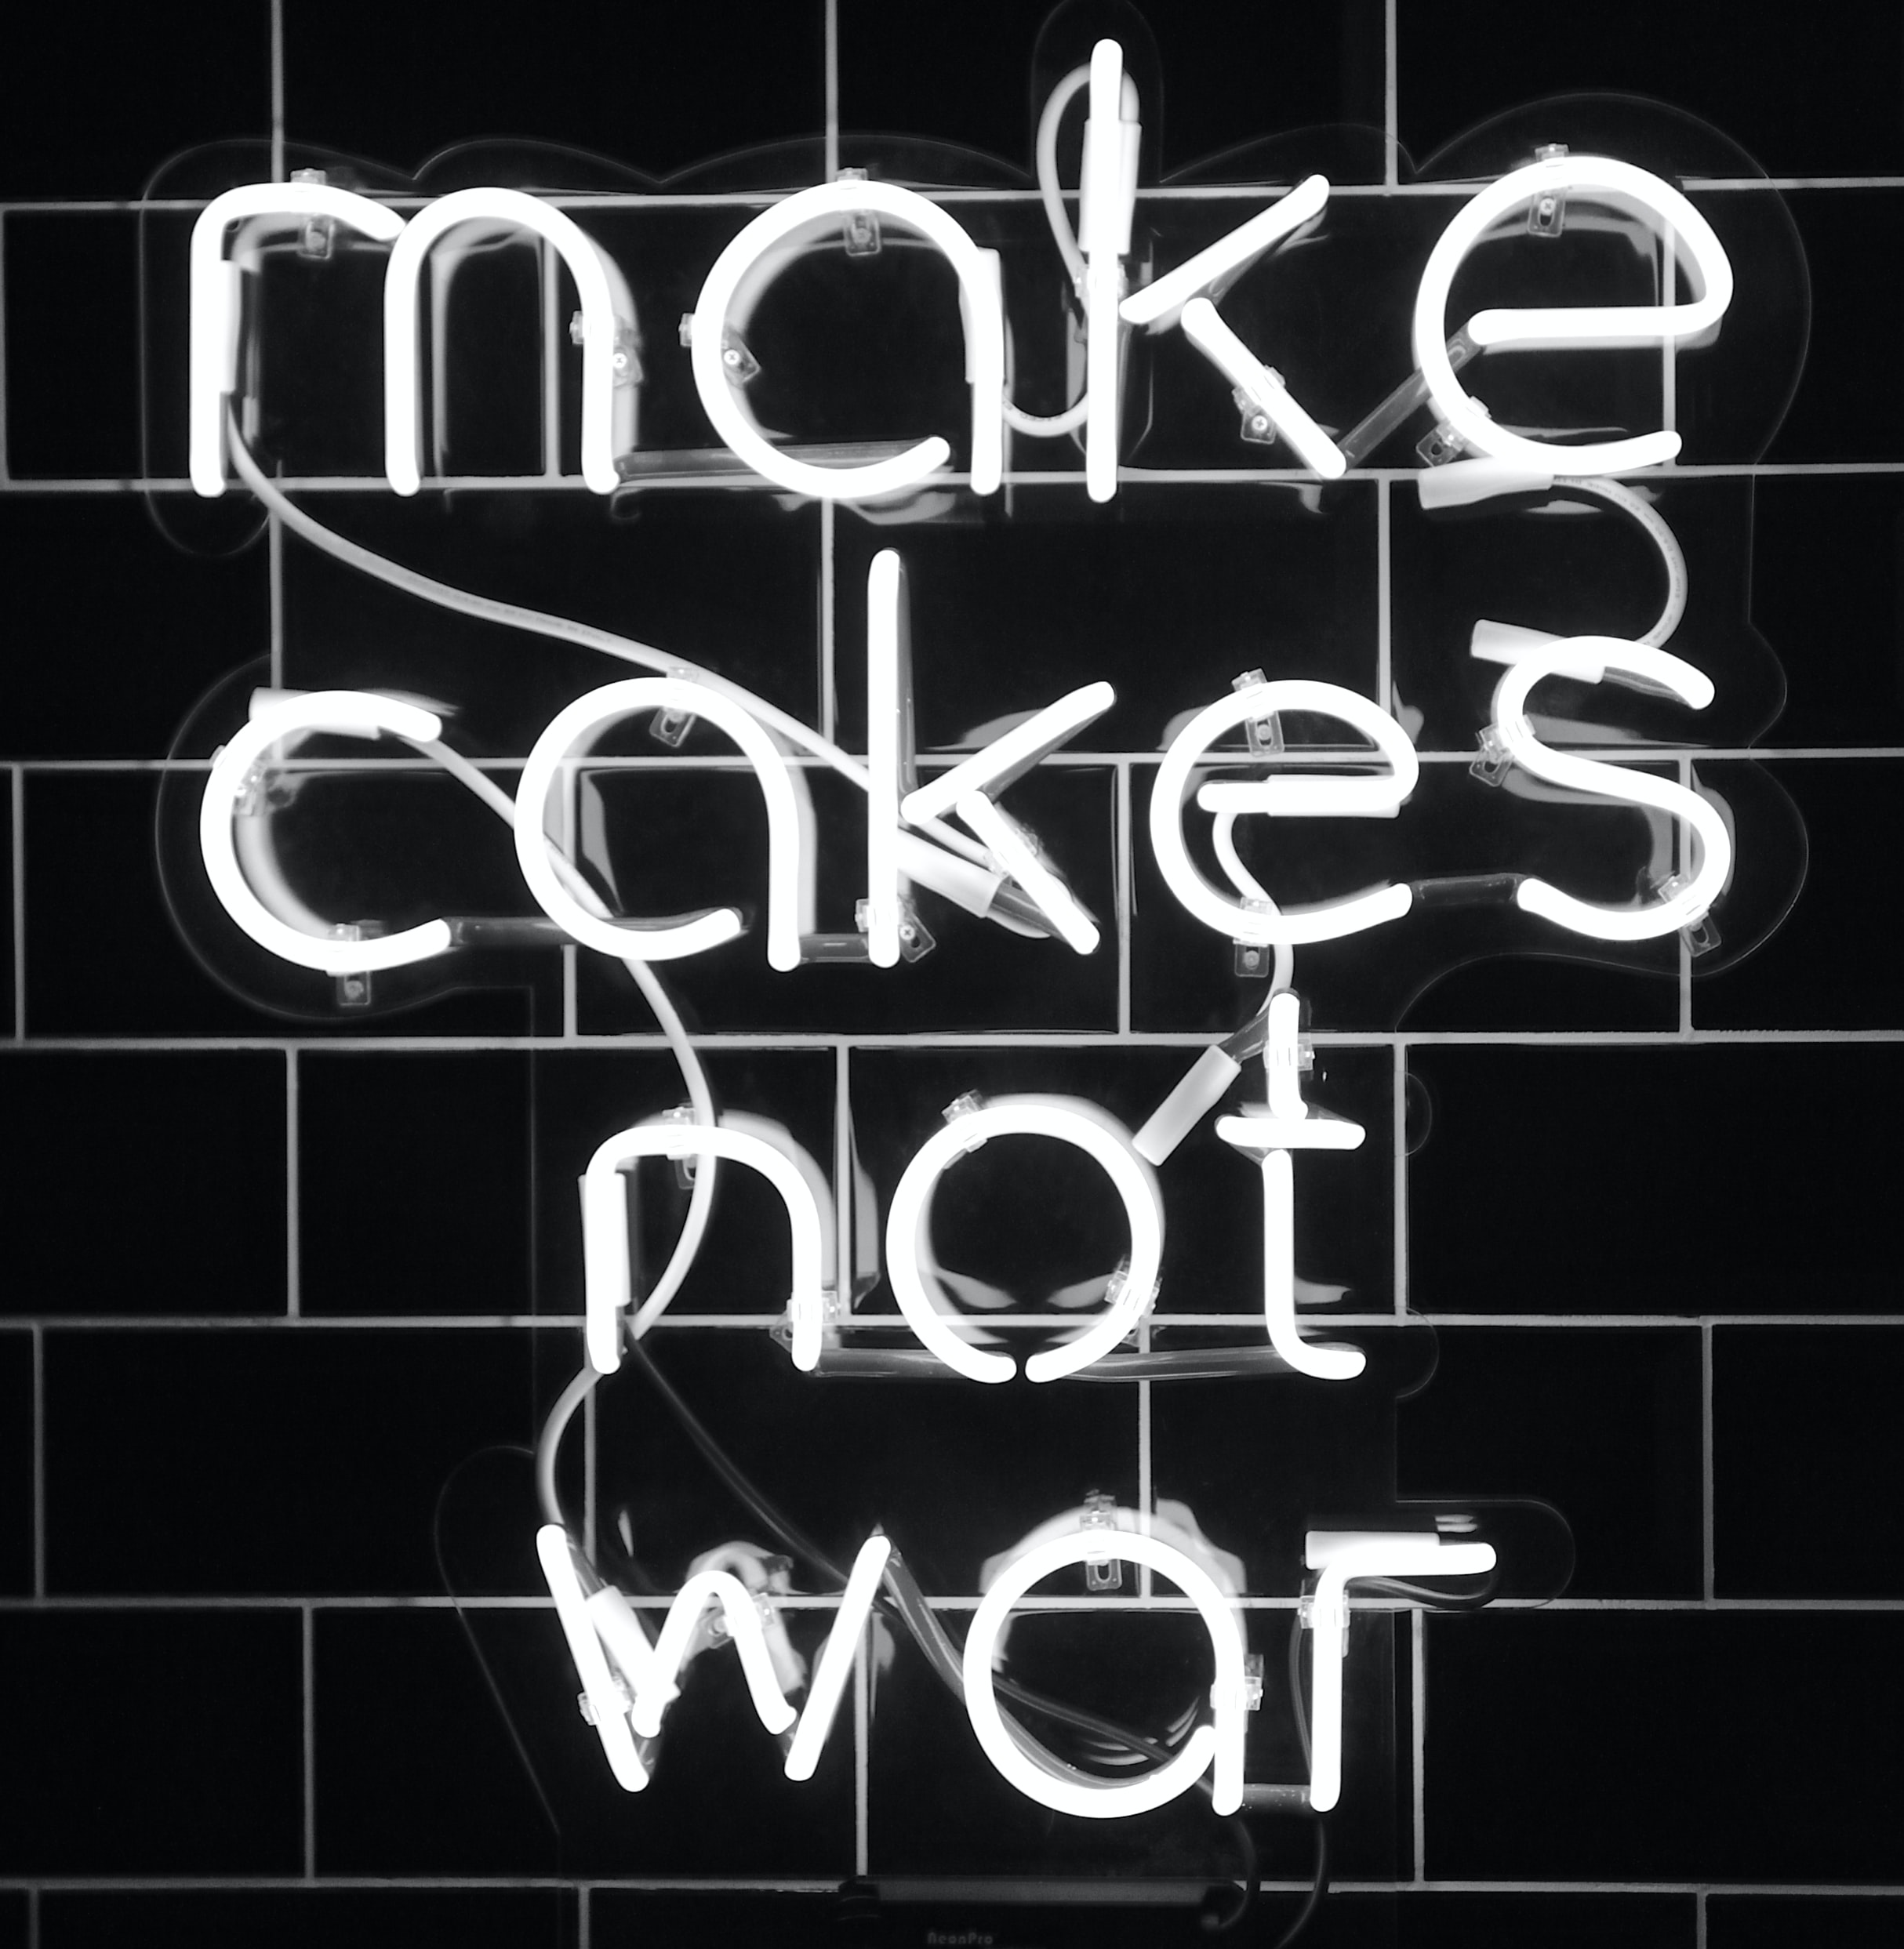 white make cakes not war neon sign